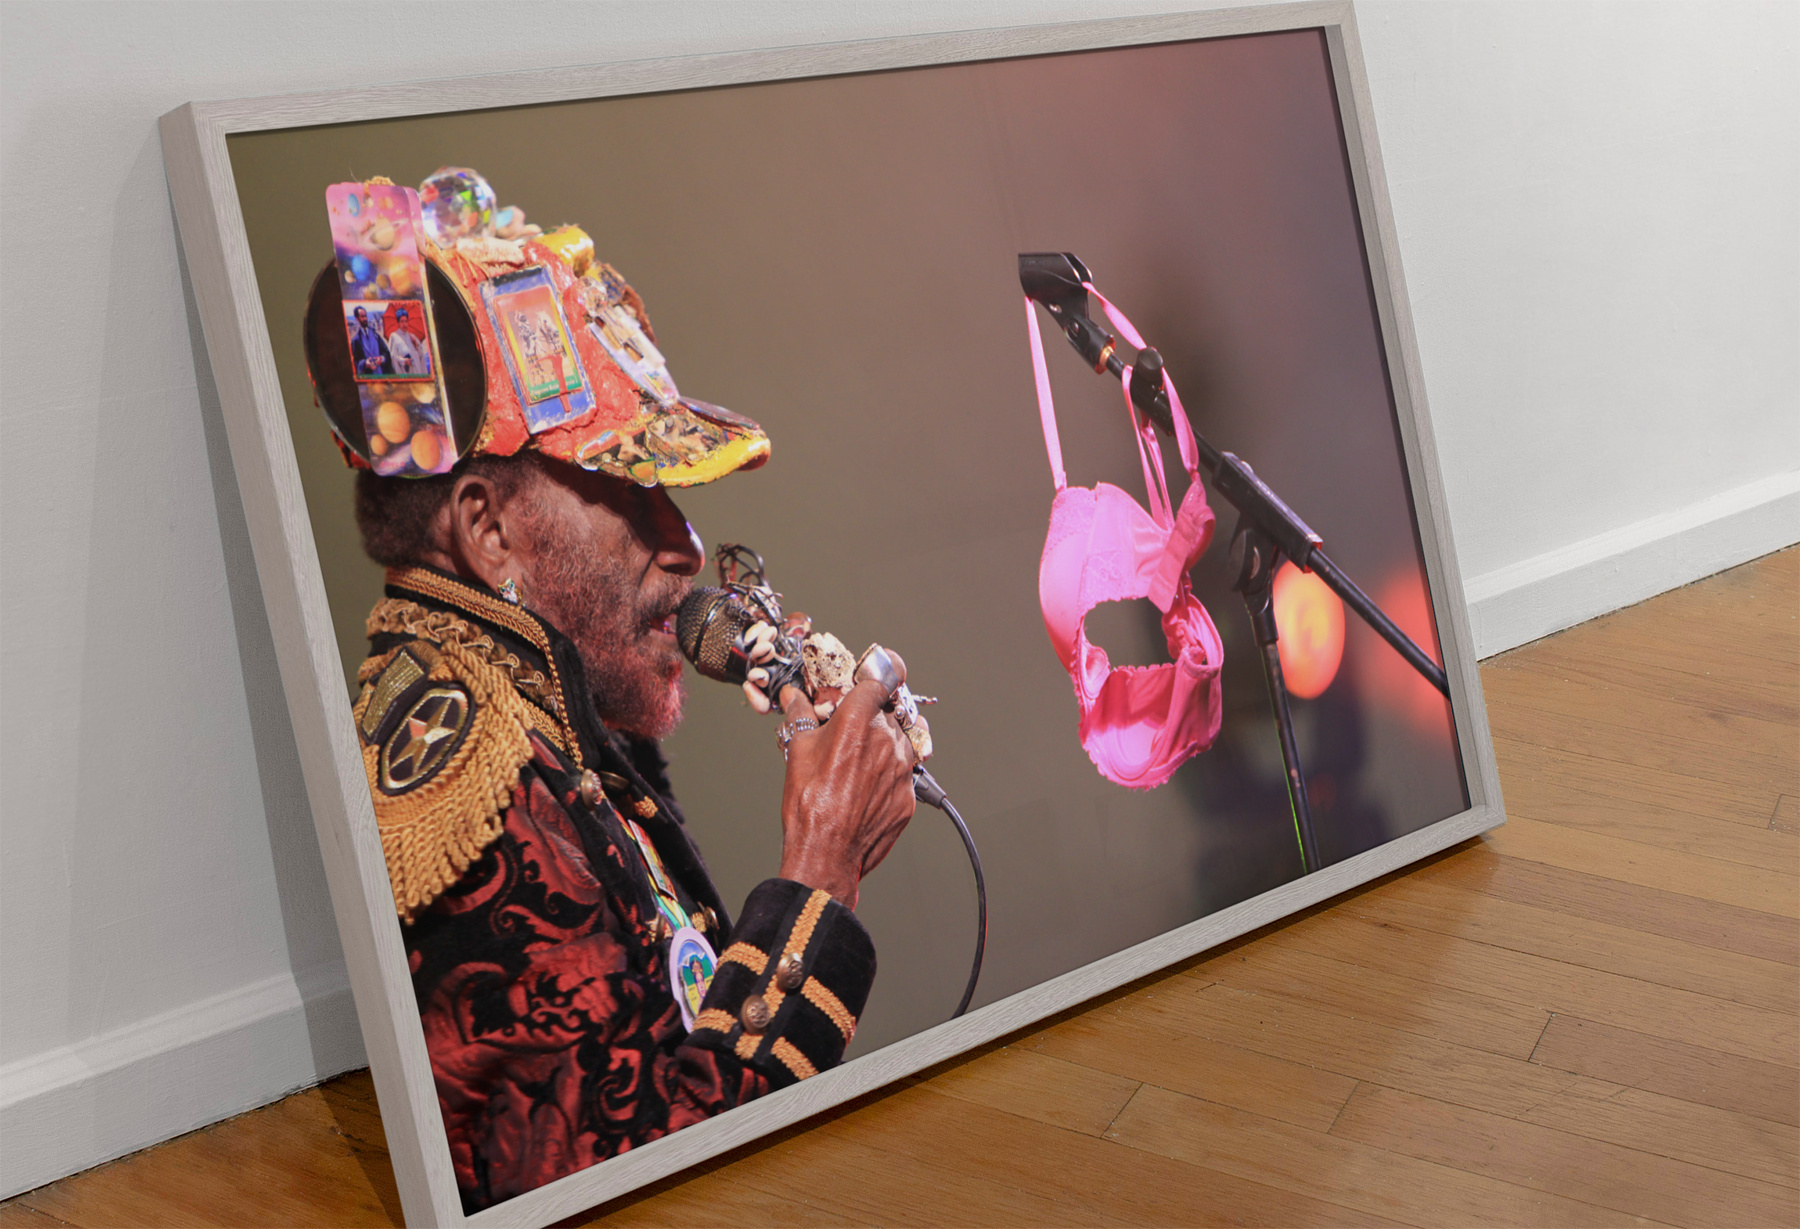 Lee Scratch Perry Live at Beat Herder 2012 (crowd throw their under wear at Lee Scratch Perry) by Michelle Heighway - photo paper poster